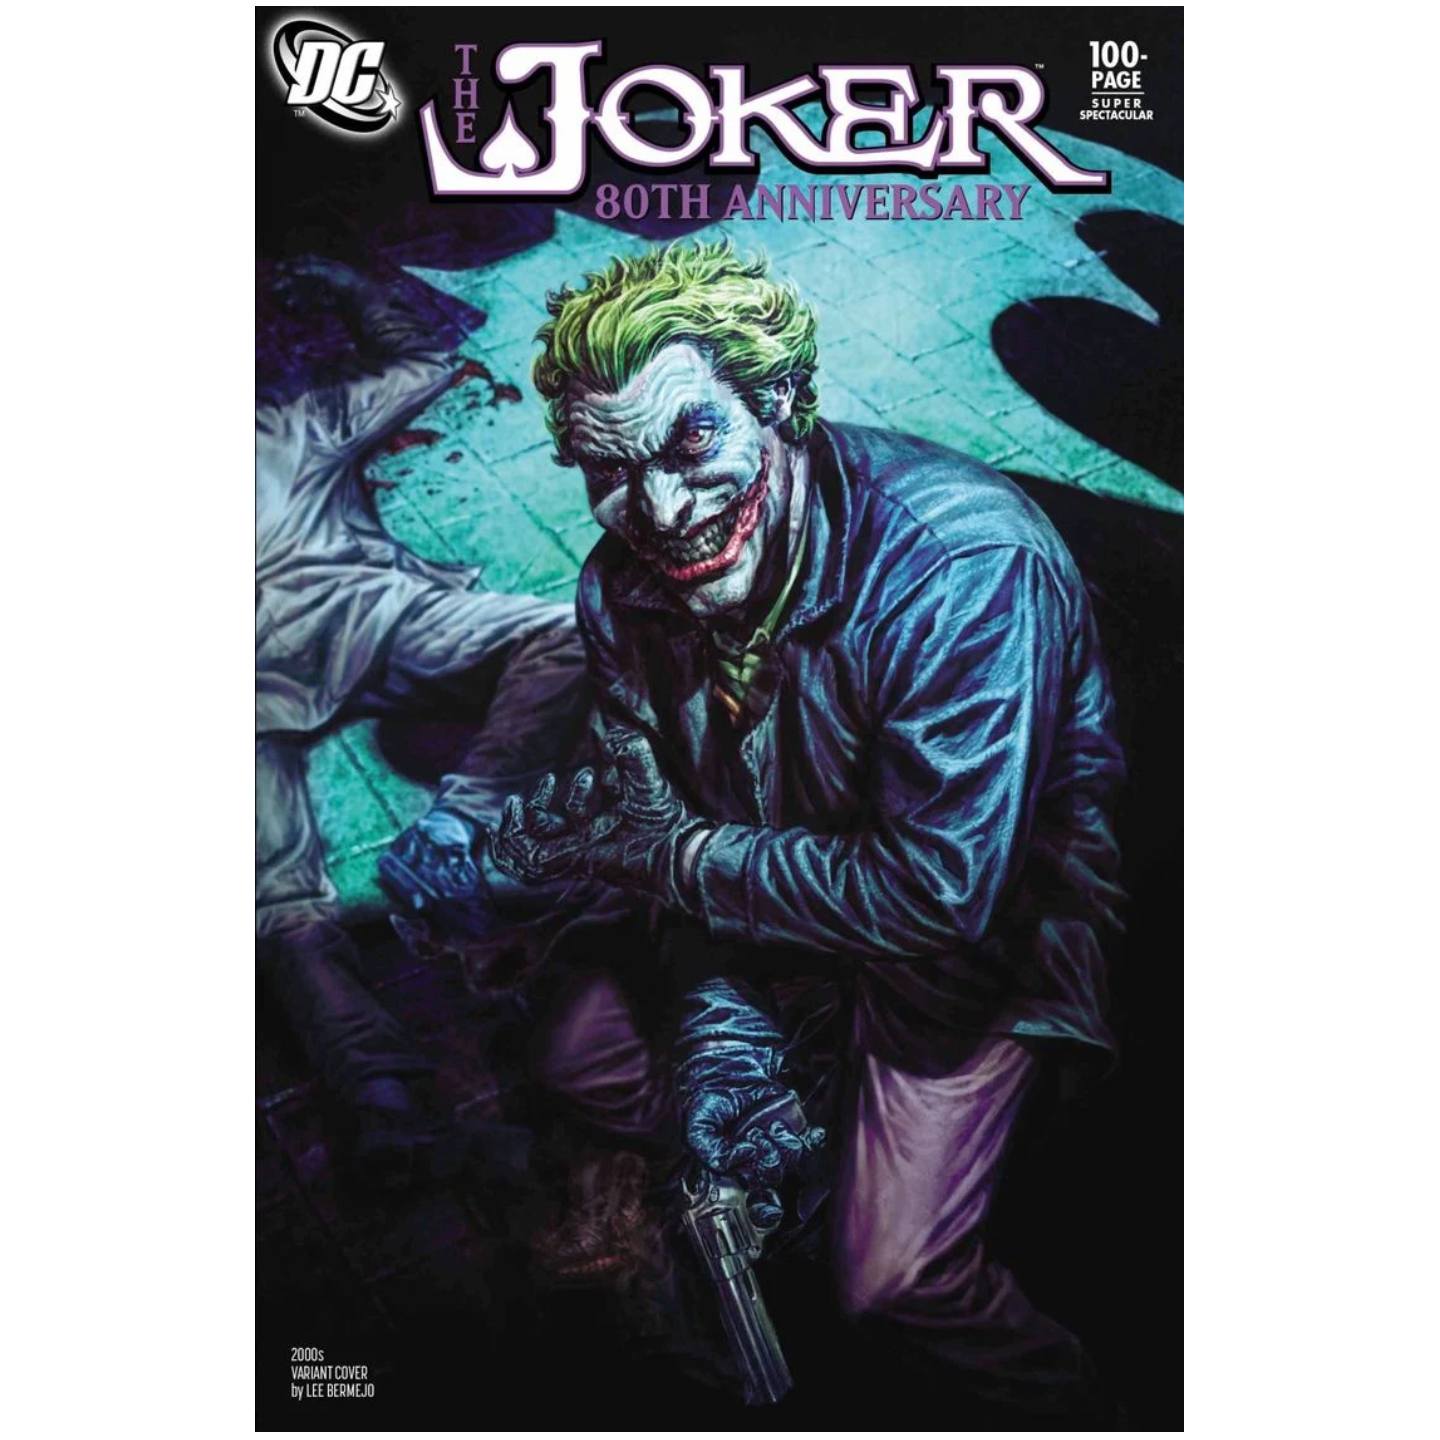 THE JOKER 80TH ANNIVERSARY 100-PAGE SUPER SPECTACULAR #1 2000S VARIANT COVER BY LEE BERMEJO